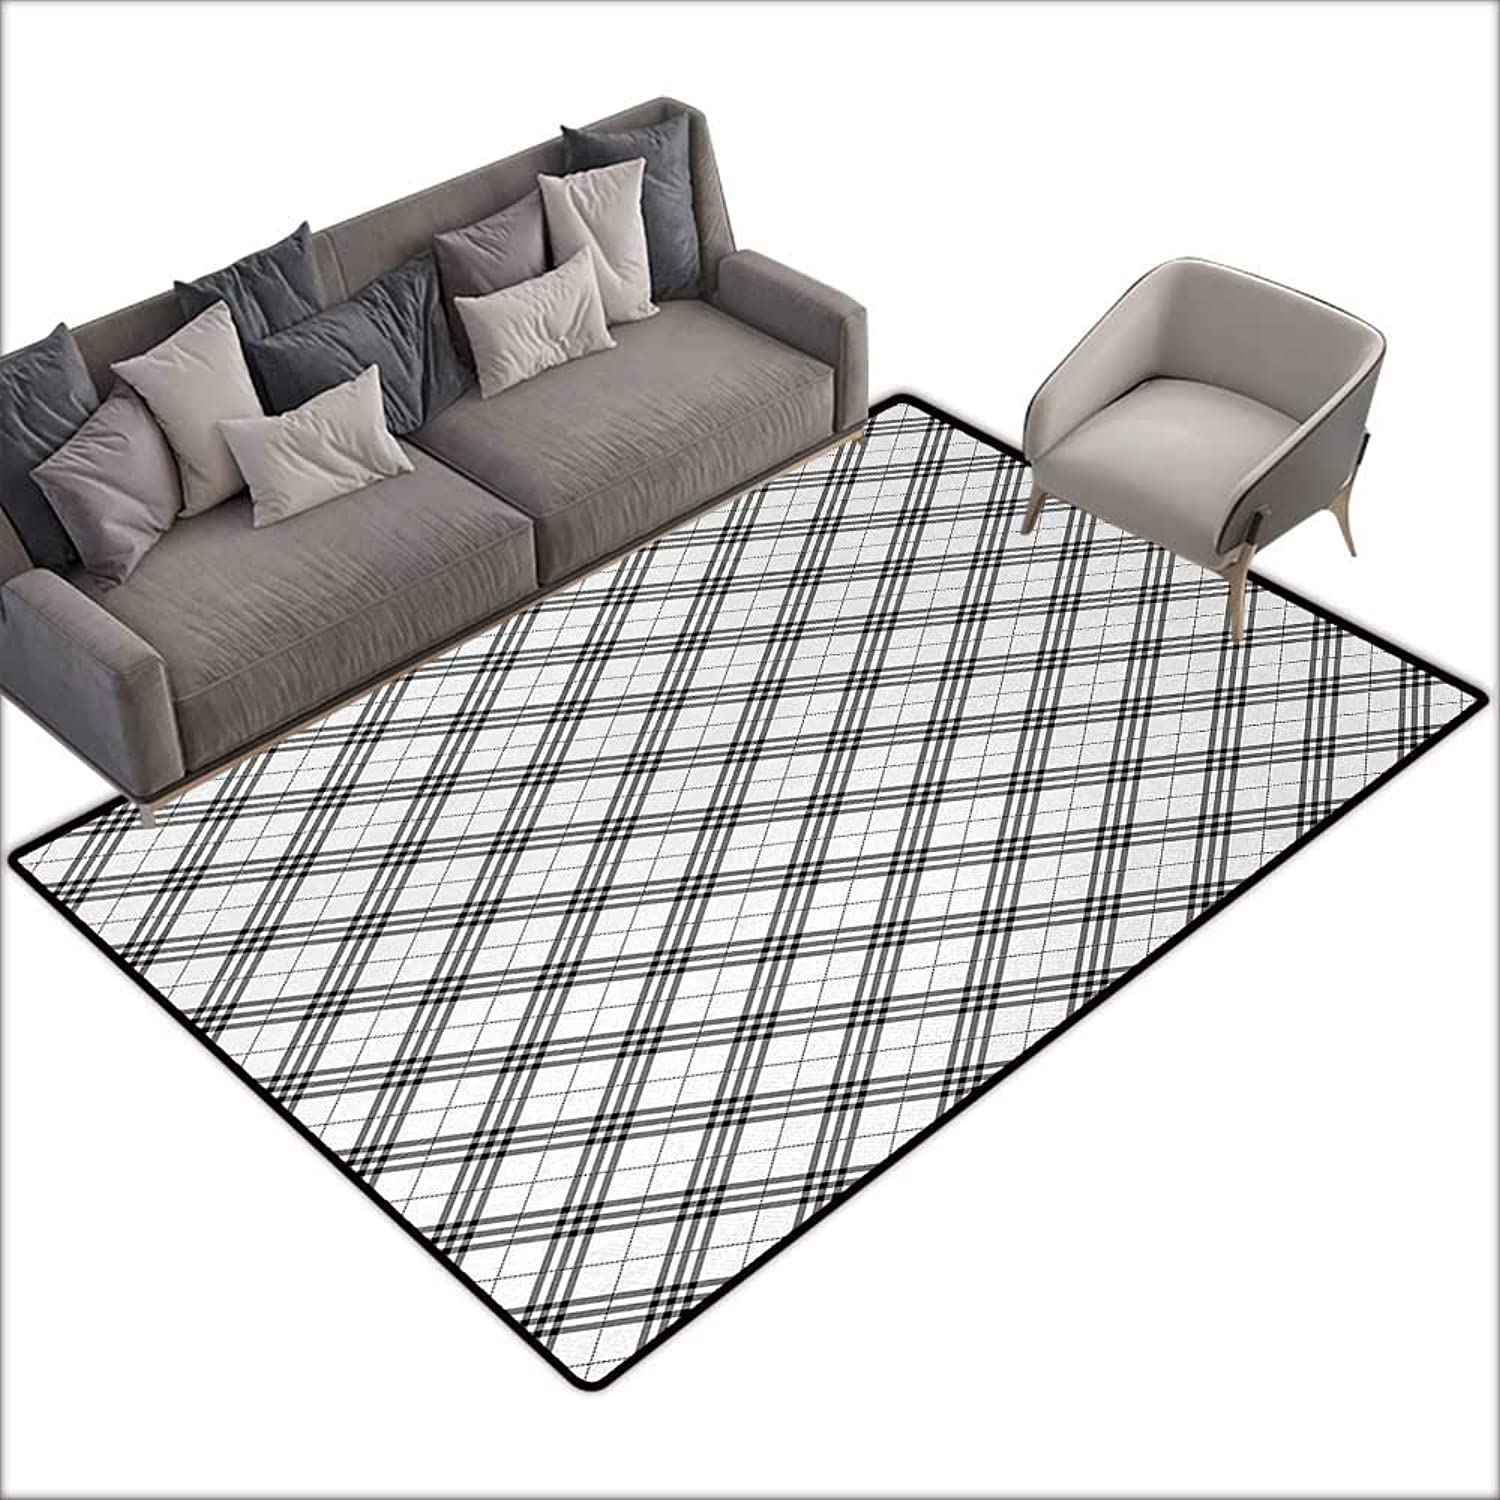 Interior Door mat Bathroom mat Slip Geometric Fashion Fabric Textured Diagonal Scottish Irish Minimalist Design Pattern Print W70 xL82